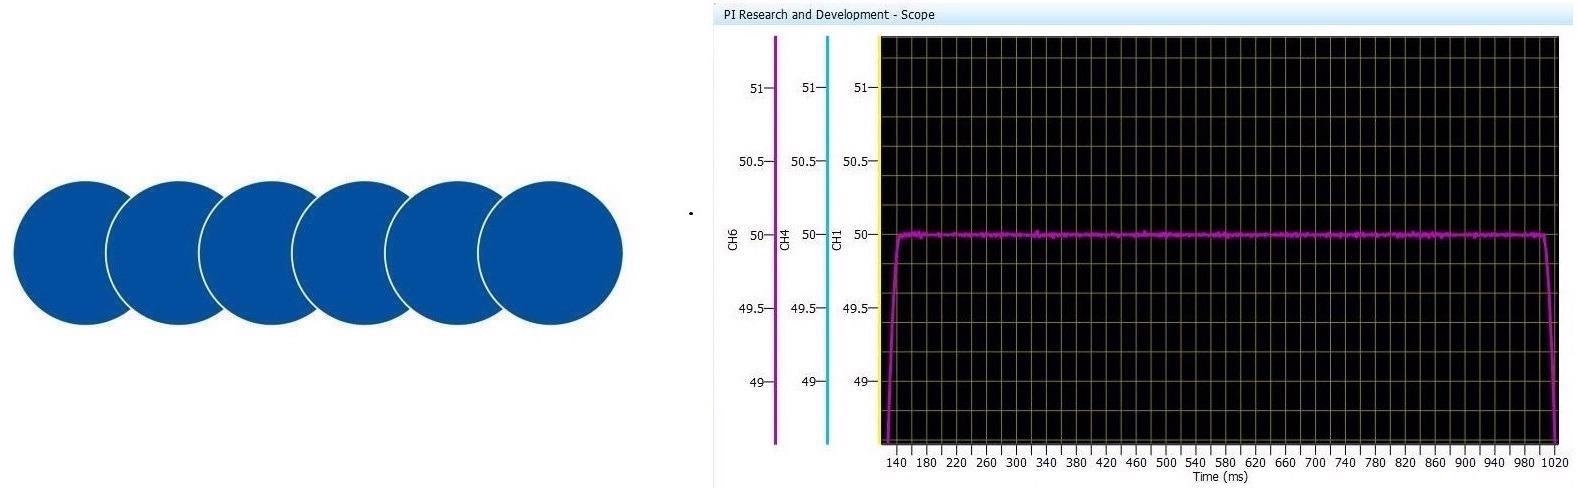 Laser pulse placement under constant velocity motion at fixed rep rate. Here, pulse overlap uniformity is correlated to motion system performance.Shown above is achievable single axis scanning performance using PI V-551 Stages on High Performance A-81x Series Motion Controller withPILOTTech.